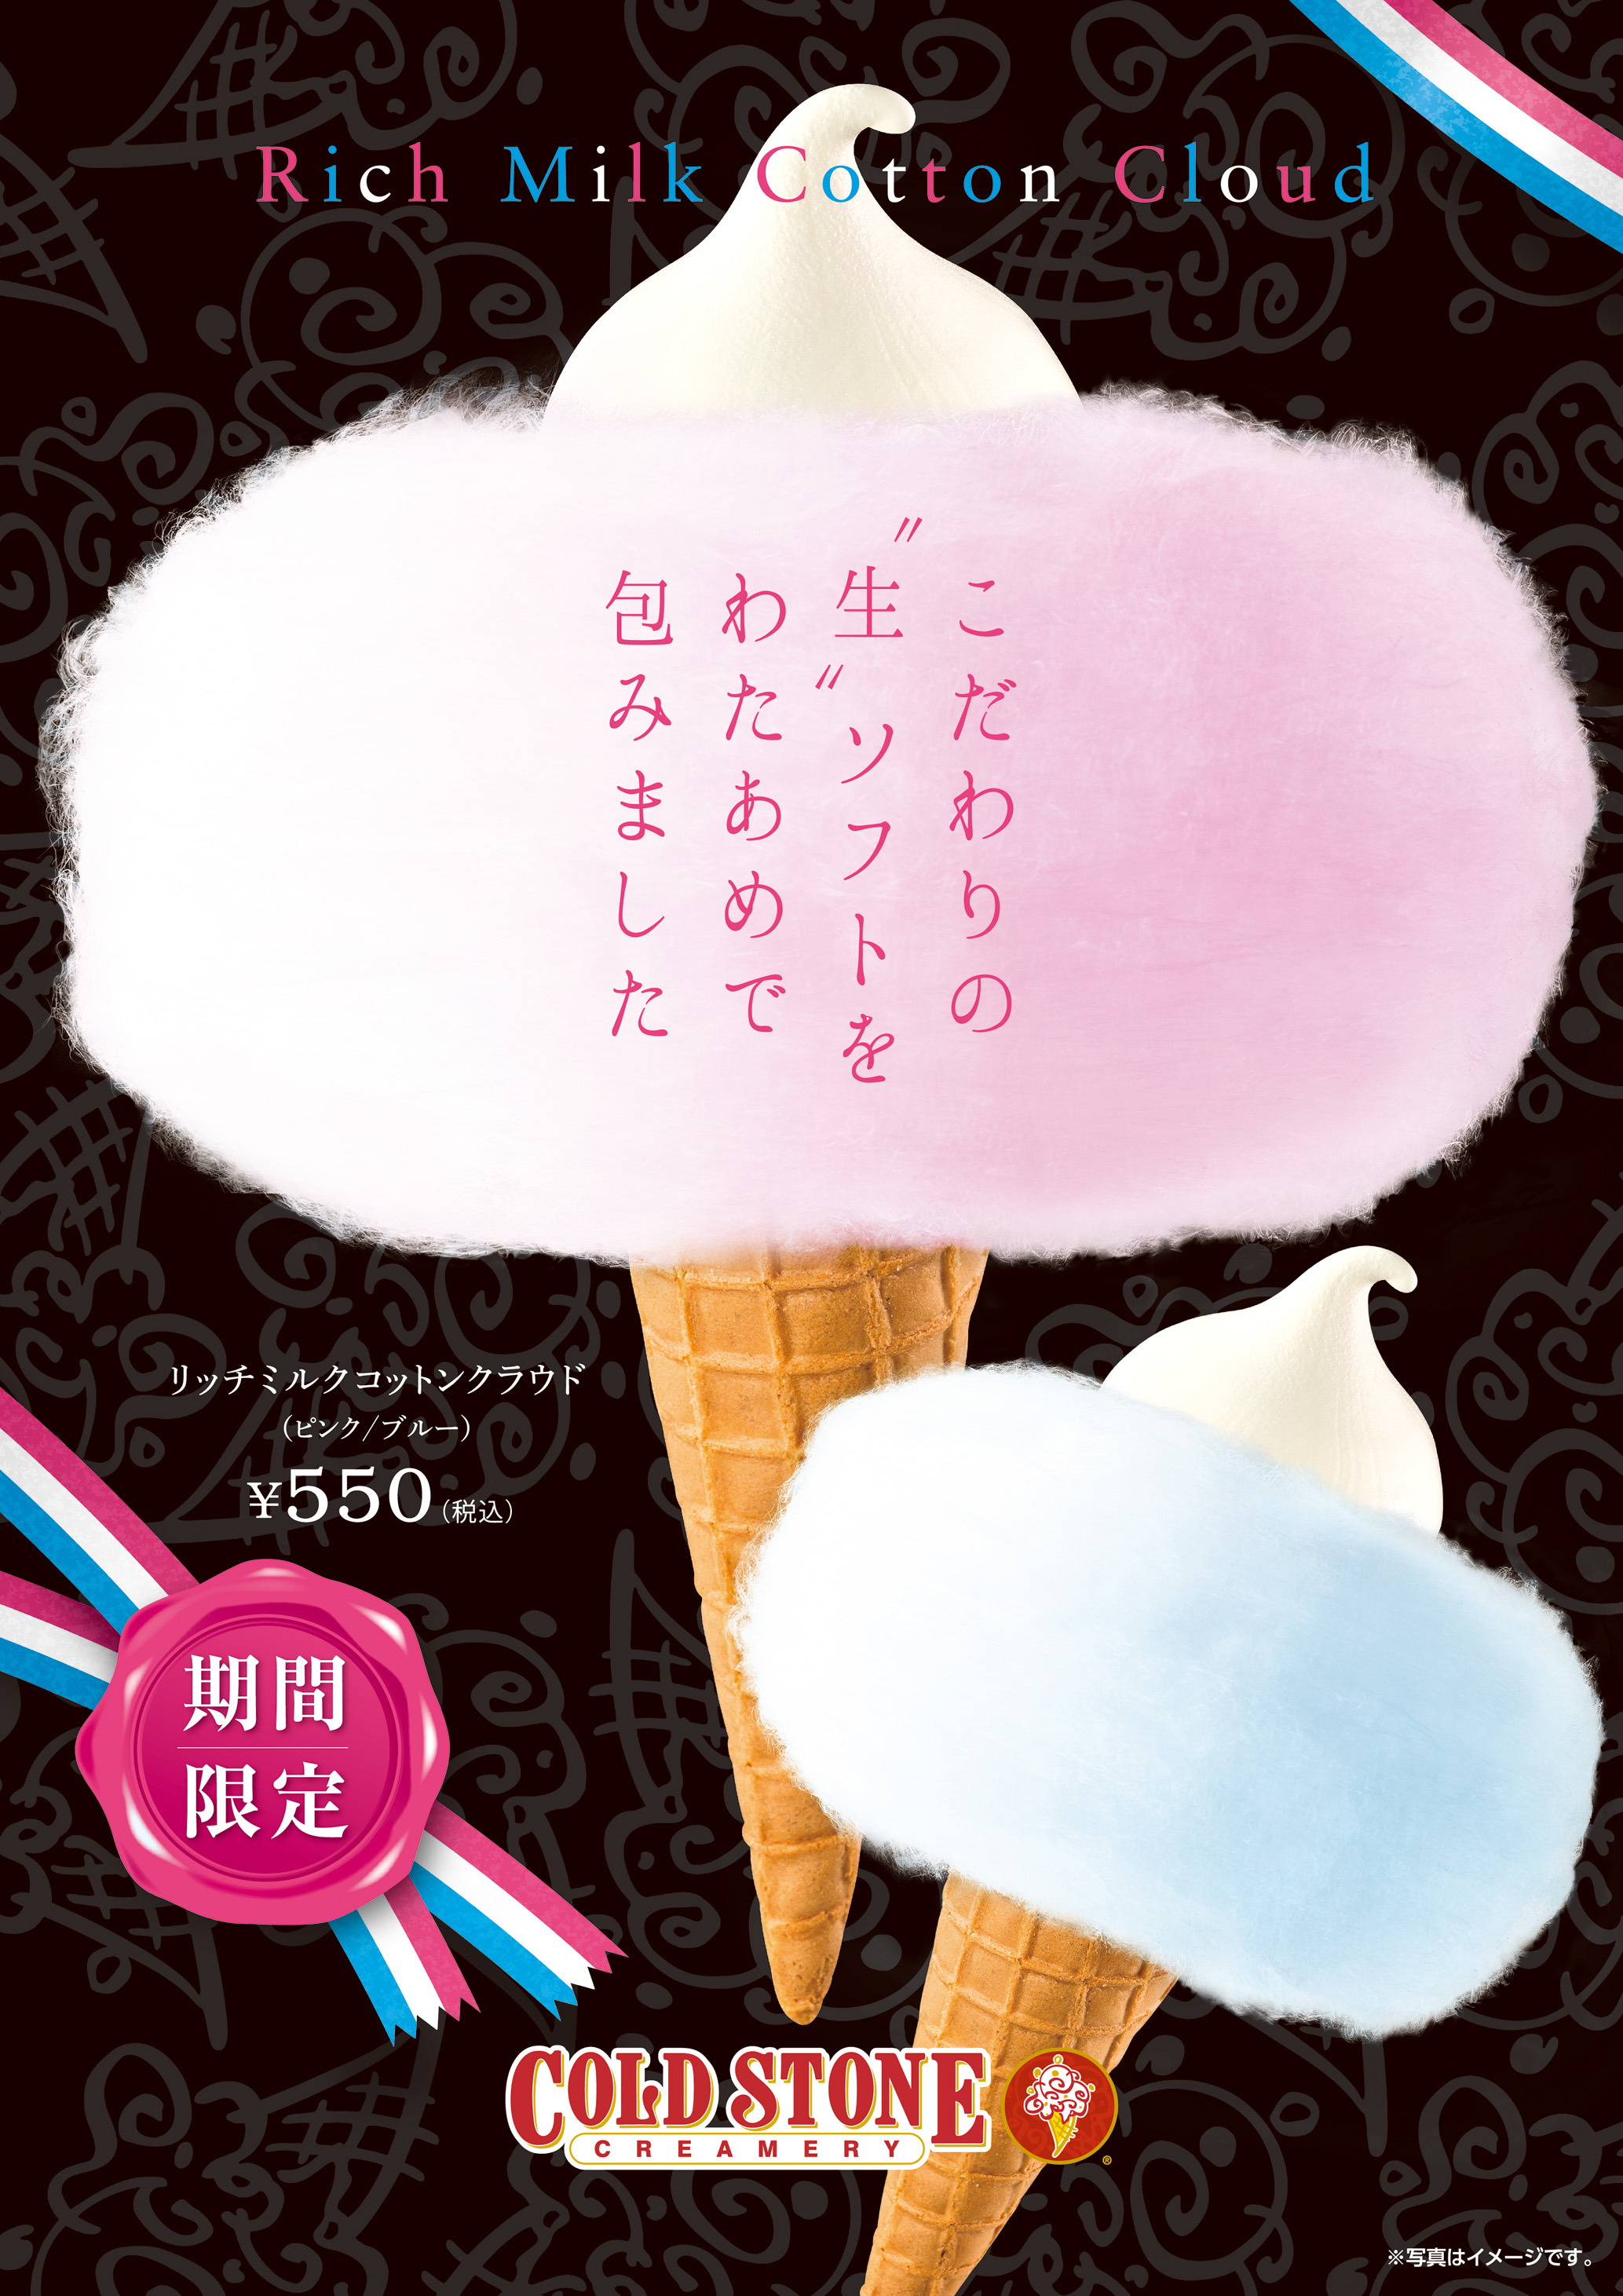 coldstone_poster_A1_CC³